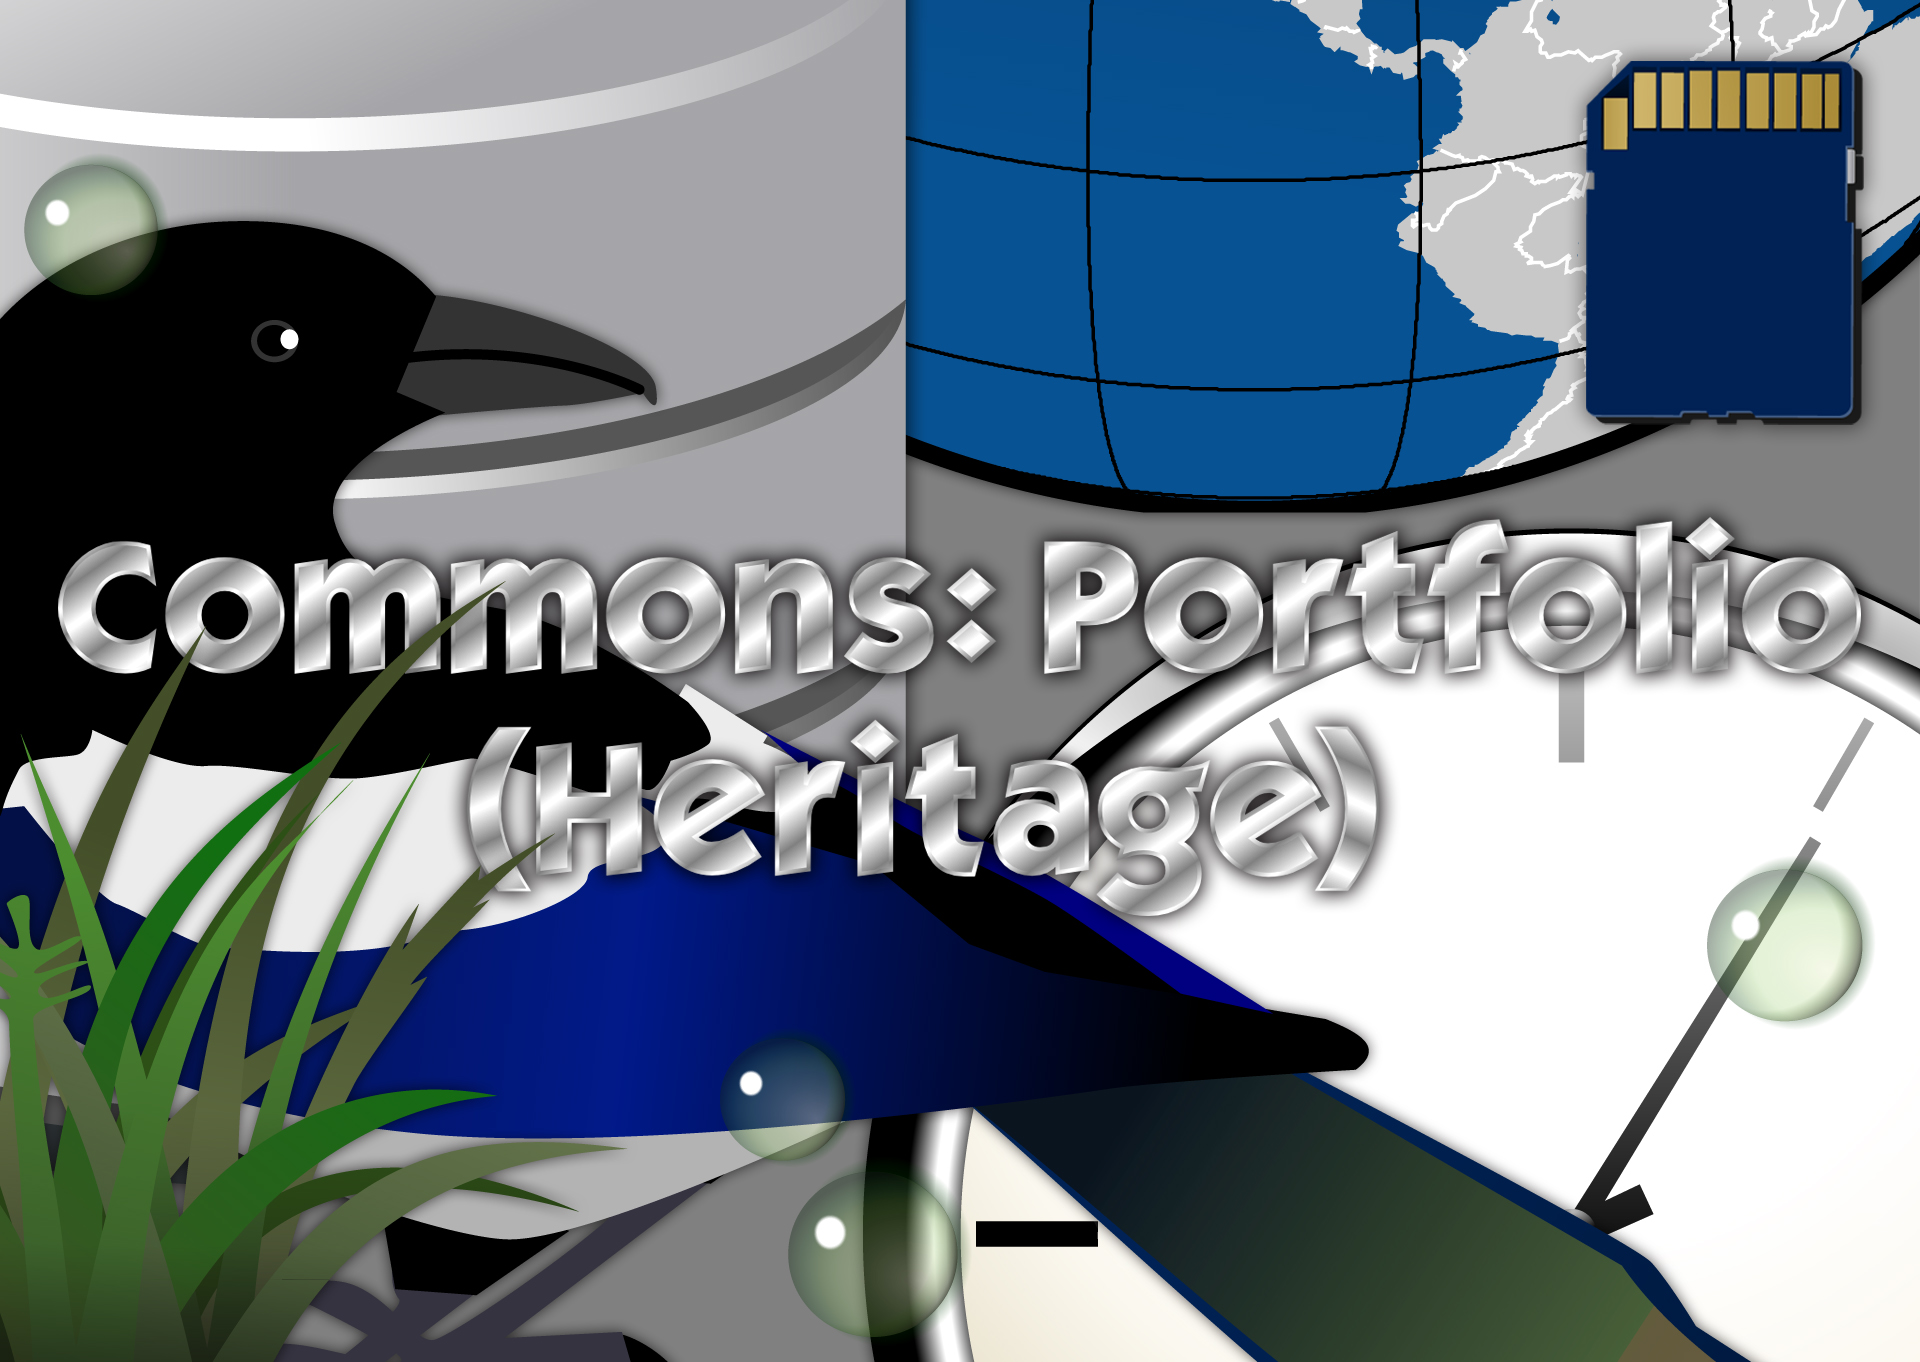 Commons-Portfolio-Heritage